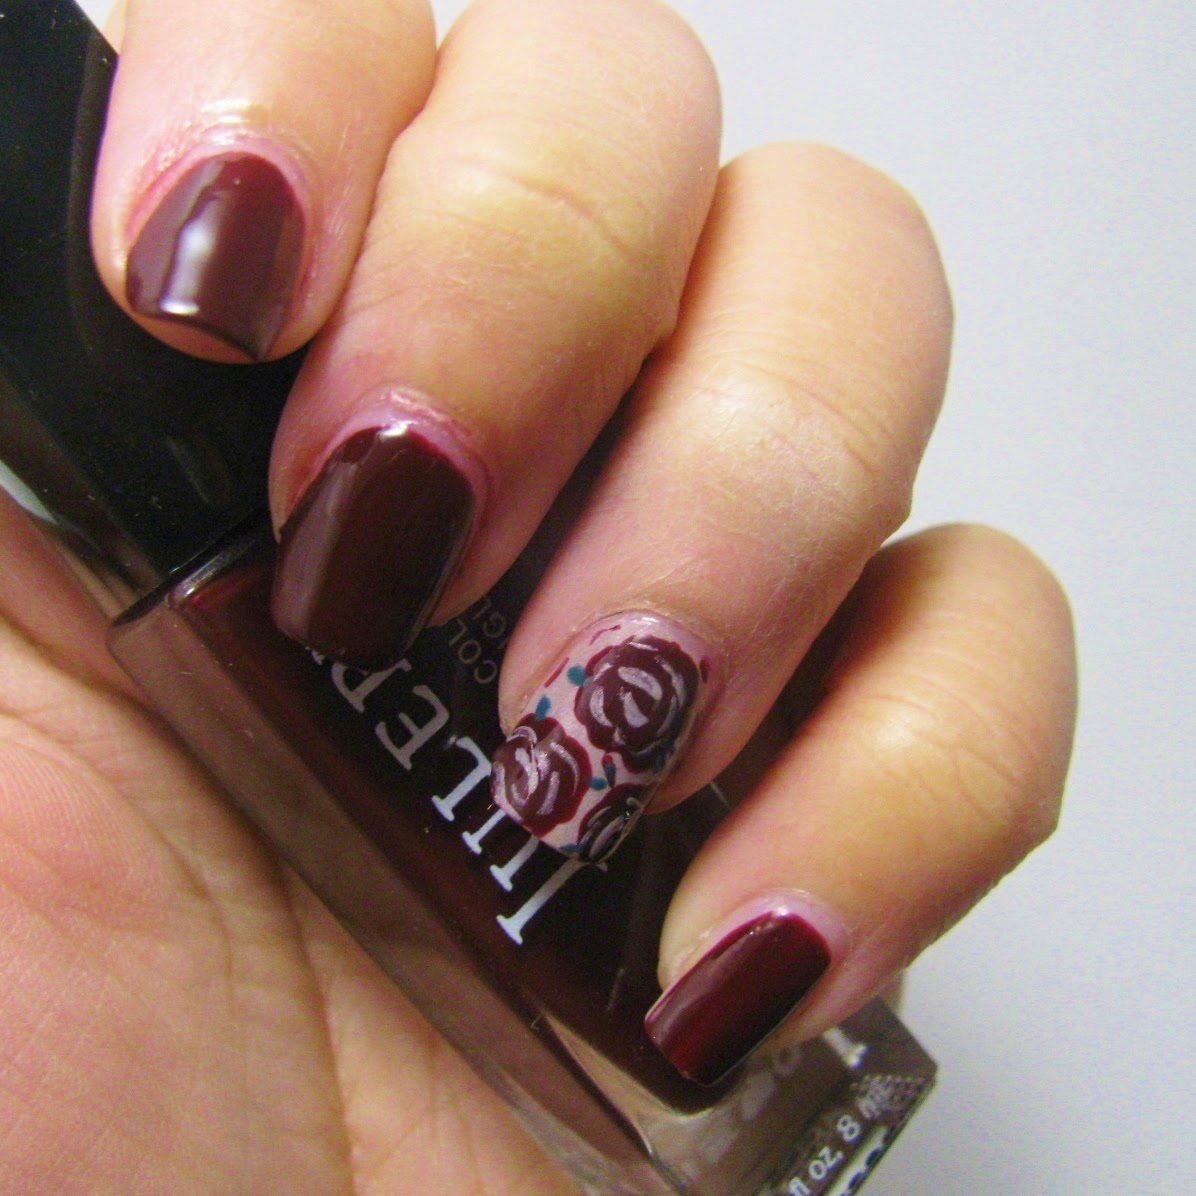 The Super Secret Nail Blog: Marsala Rose Nail Art